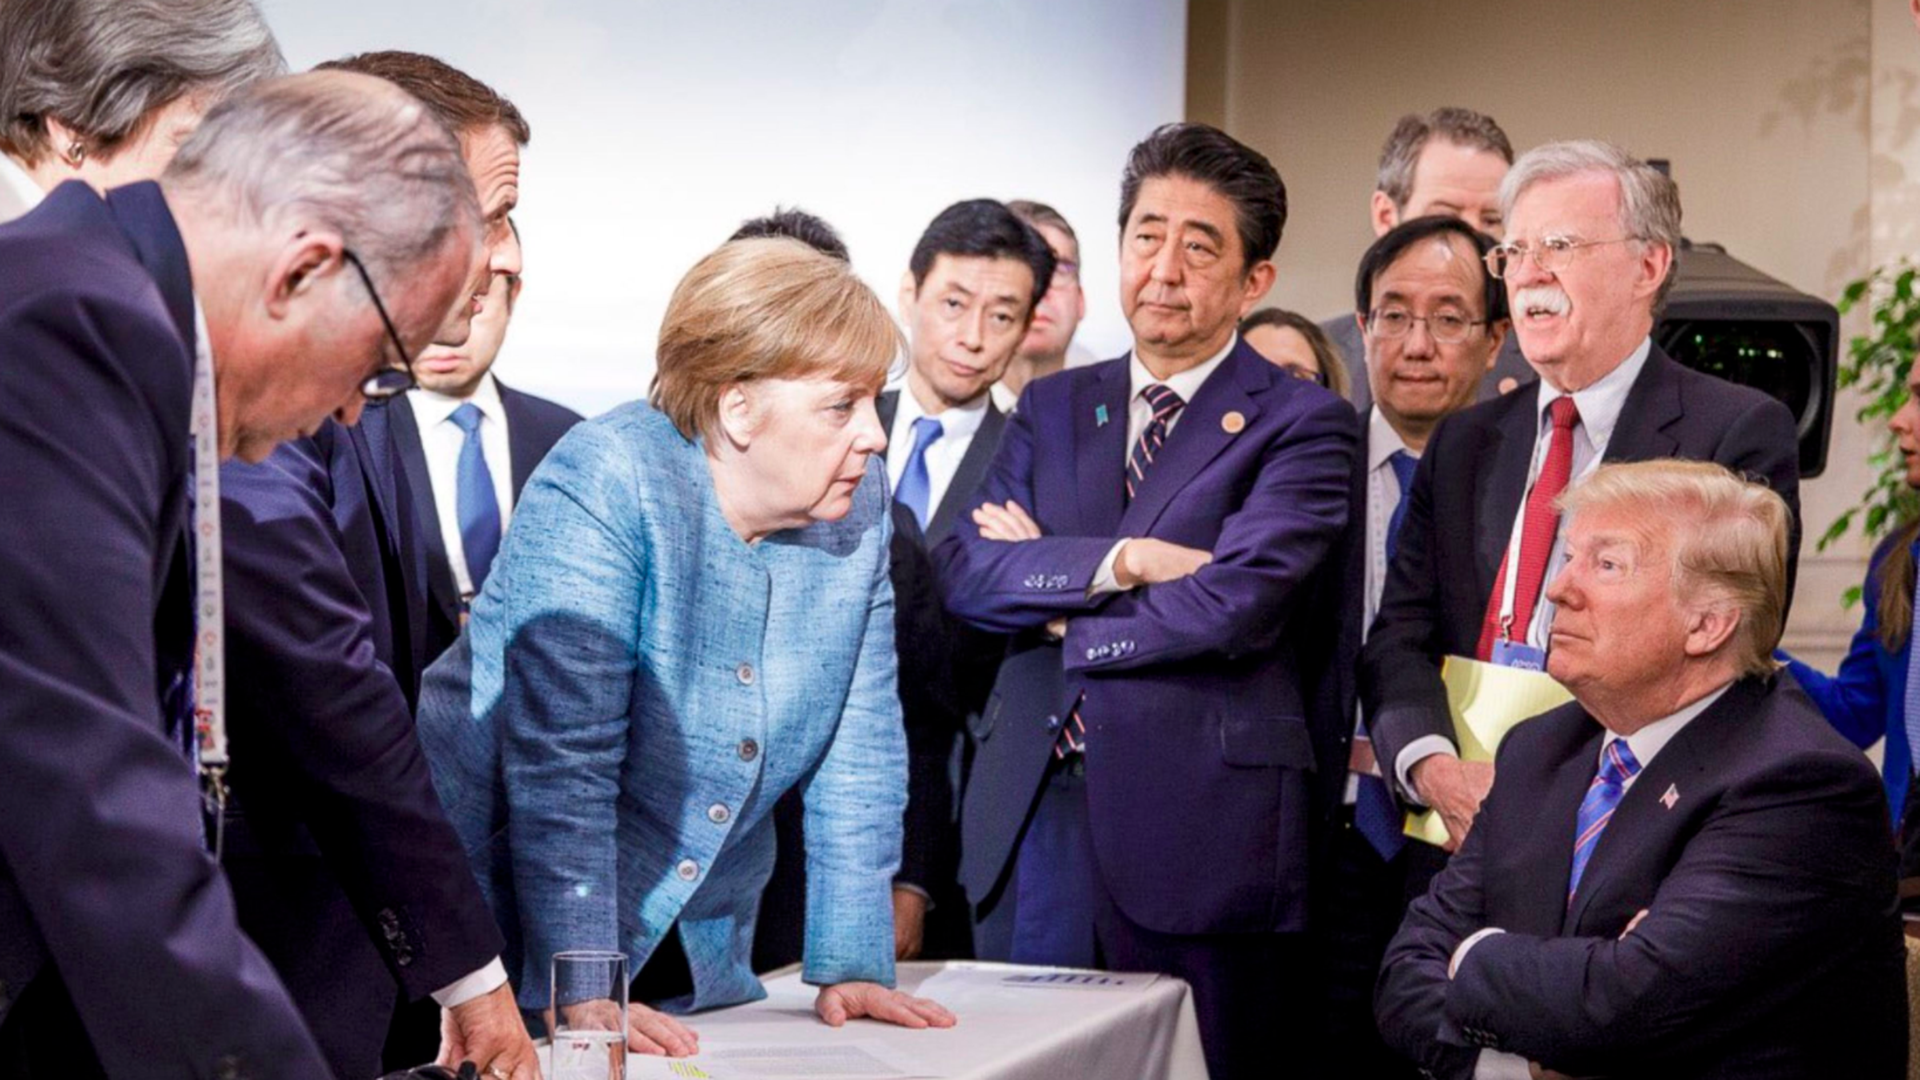 Merkel leans over a sitting Trump